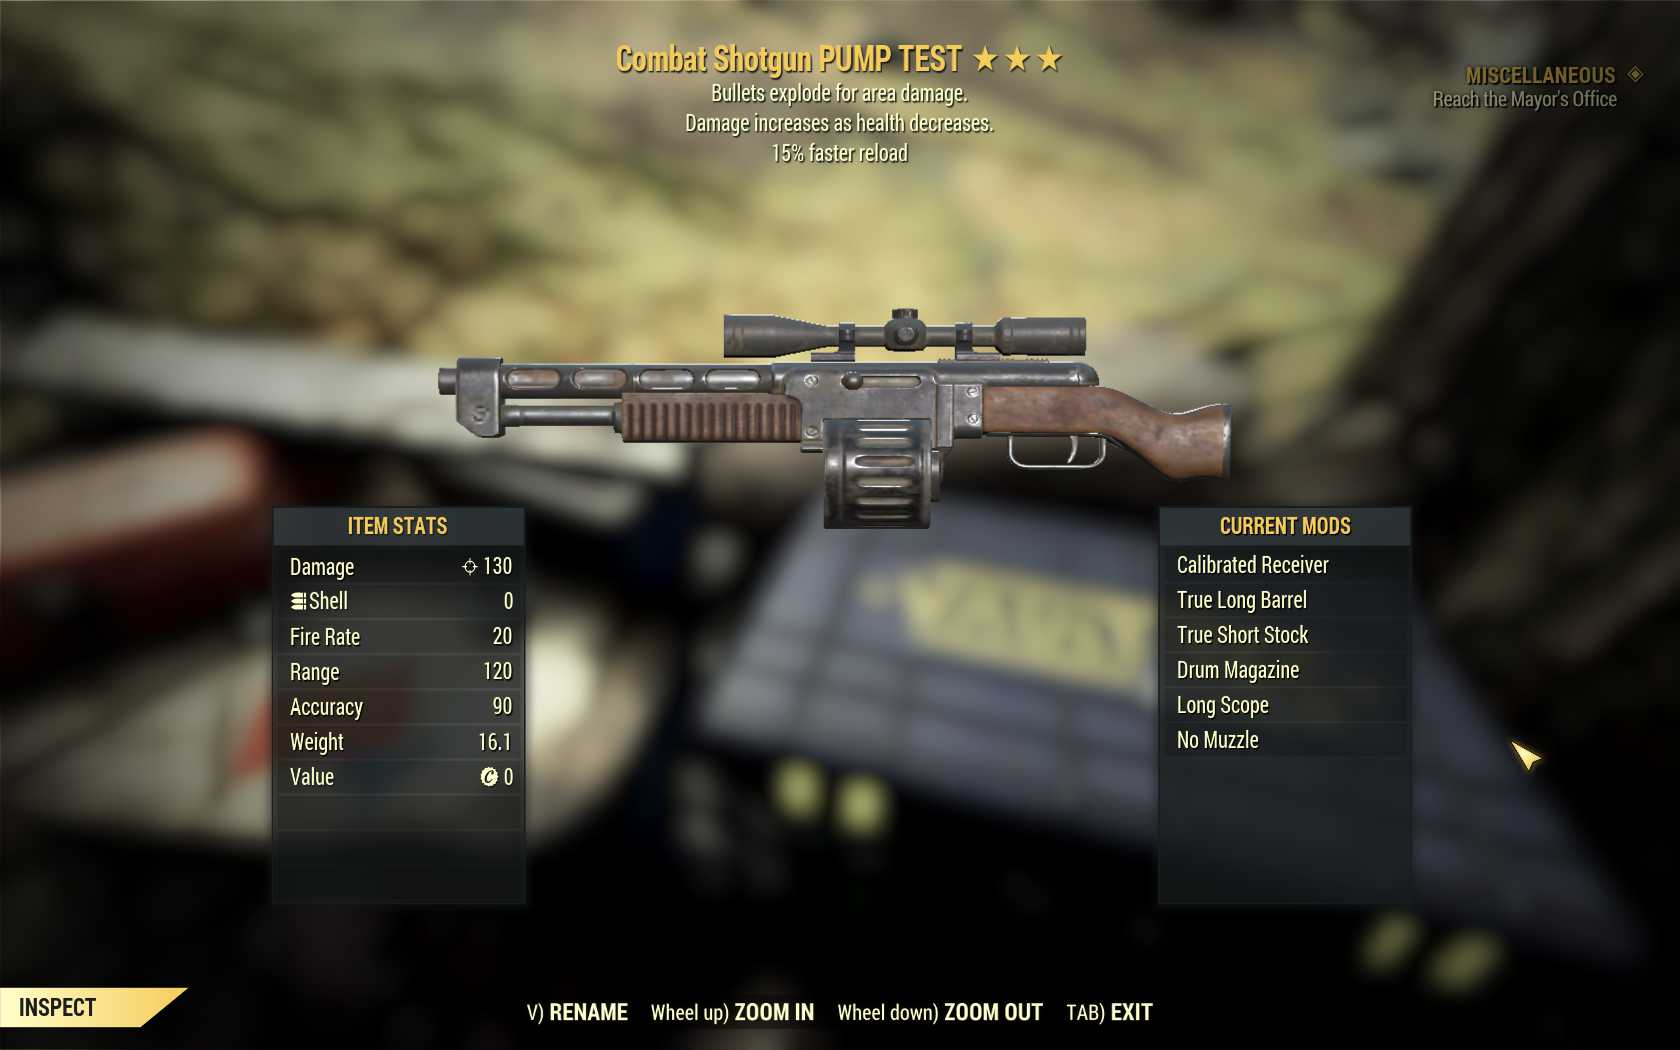 [Glitched weapon, Unbreakable] Bloodied Explosive Combat Shotgun (15% Faster Reload) [600+ DMG]